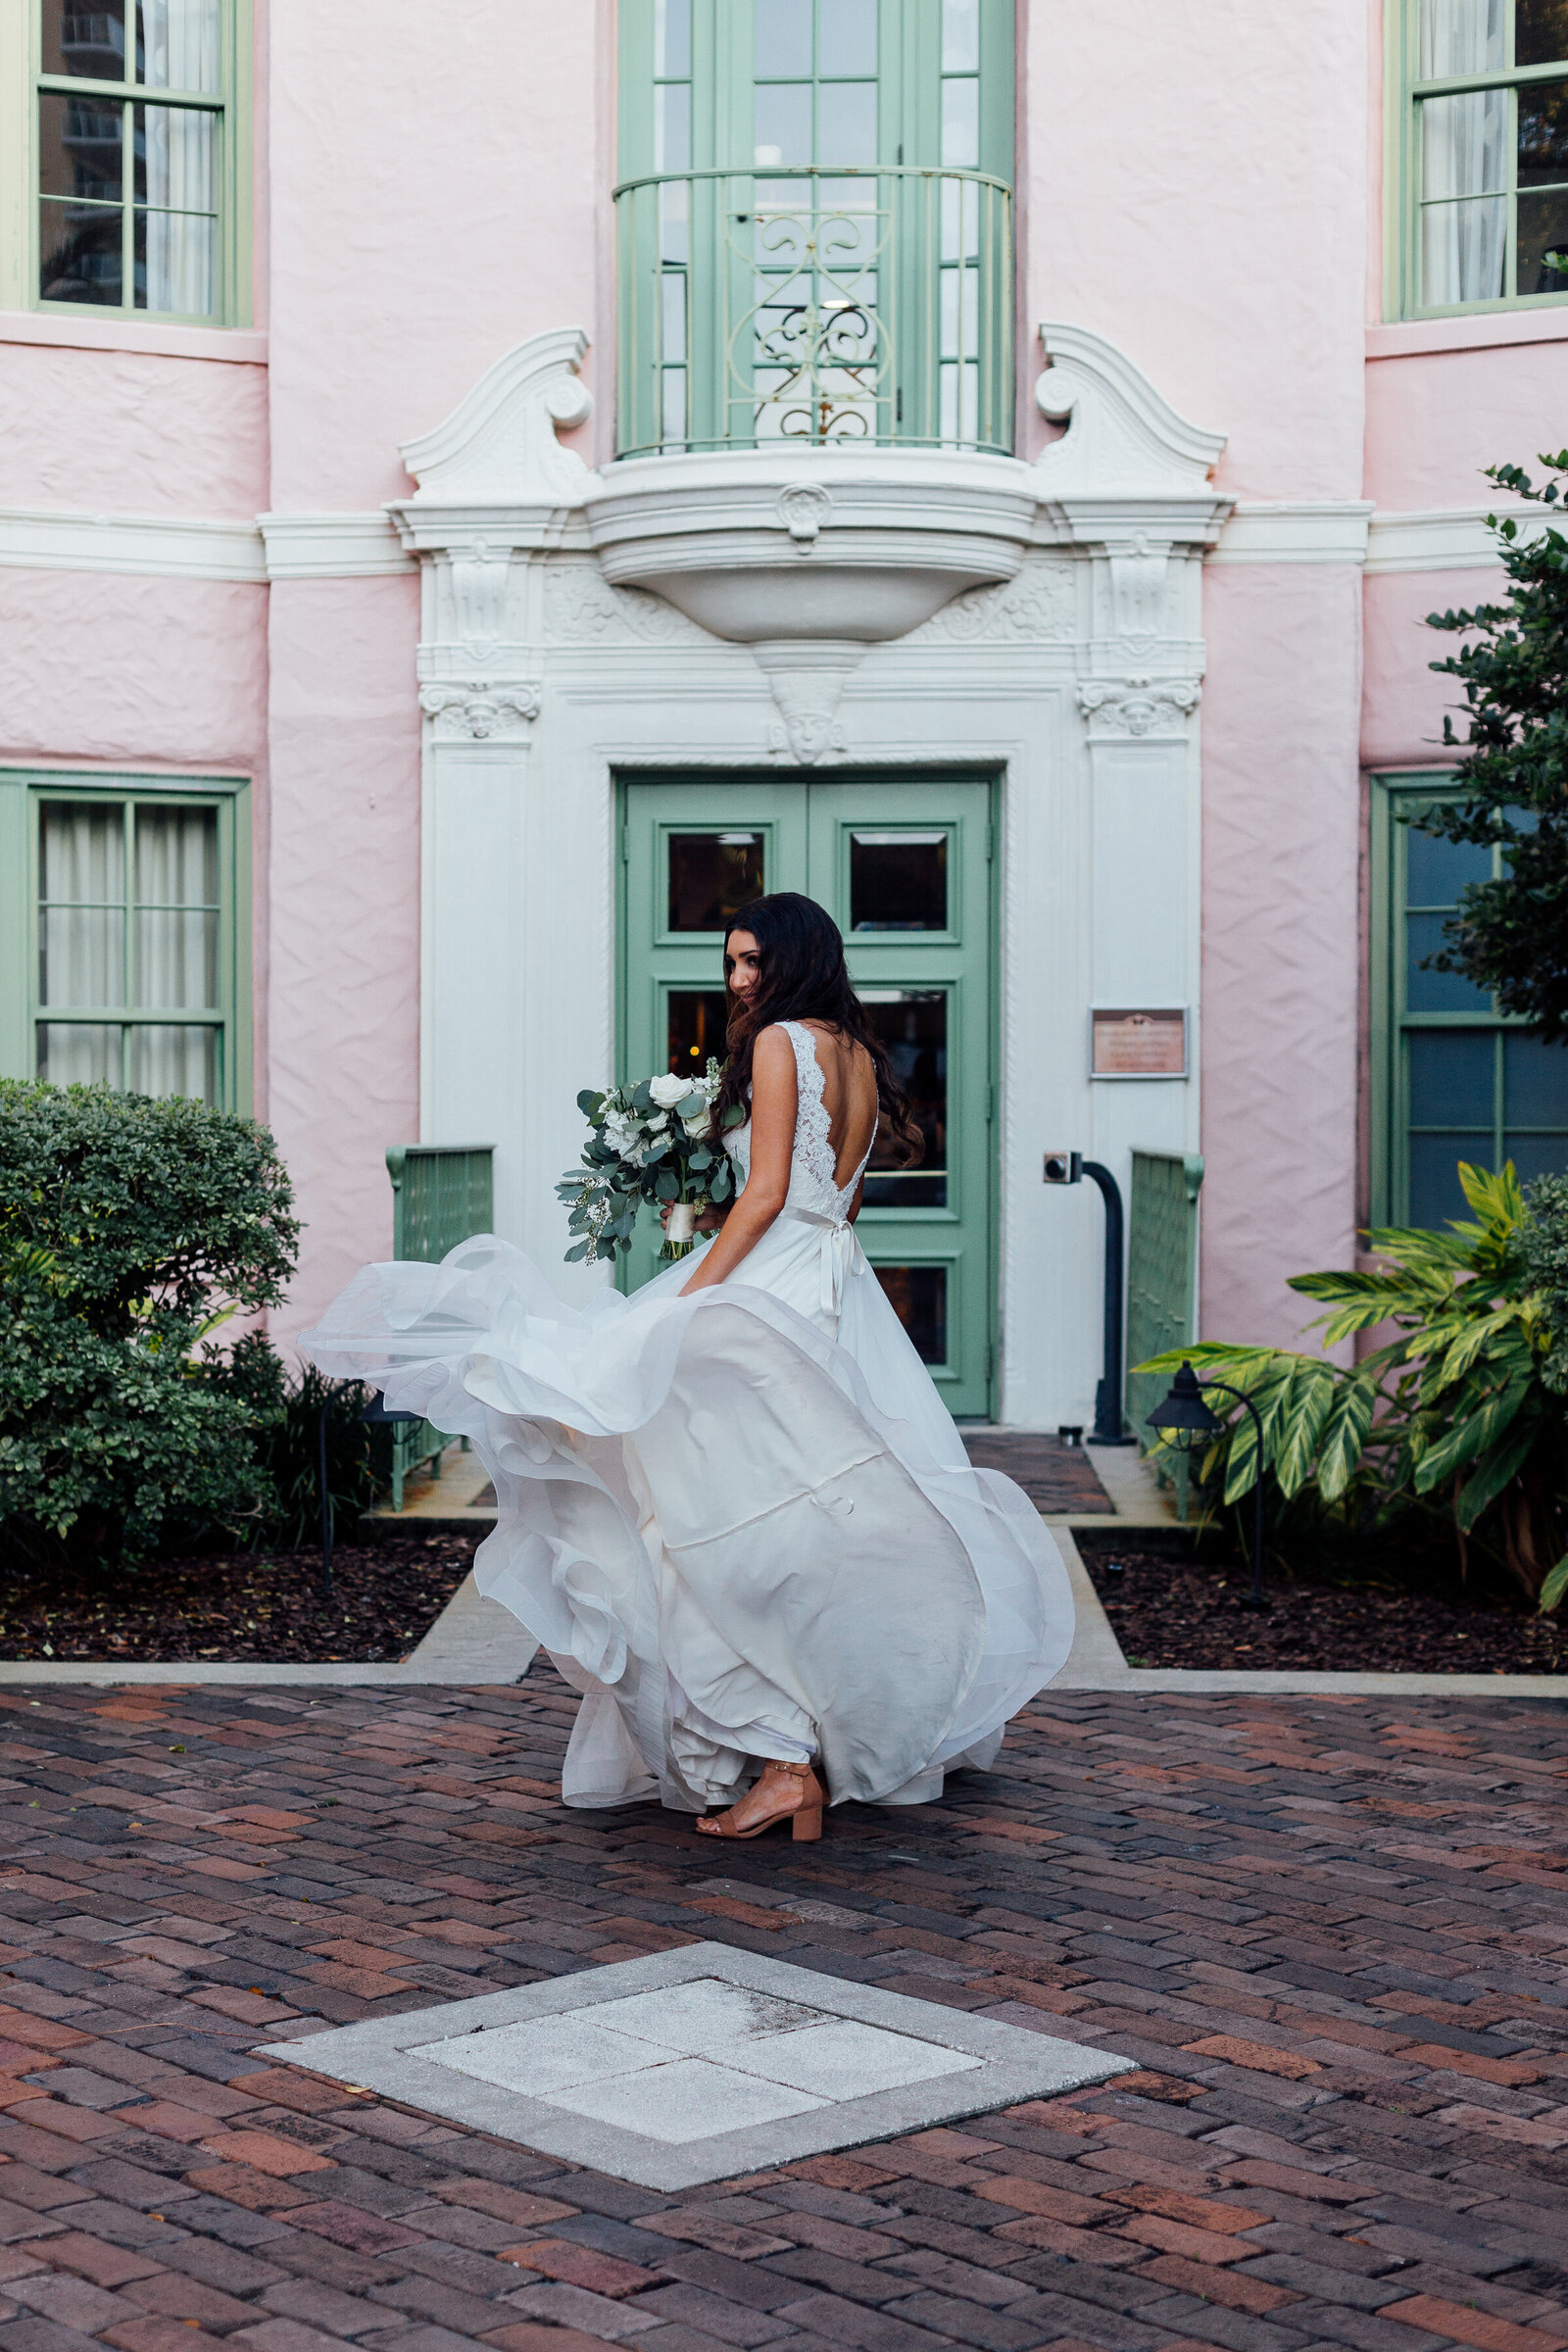 bride-walking-with-flowing-dress-into-pink-house-in-florida-photo-iris-and-urchin-ryley